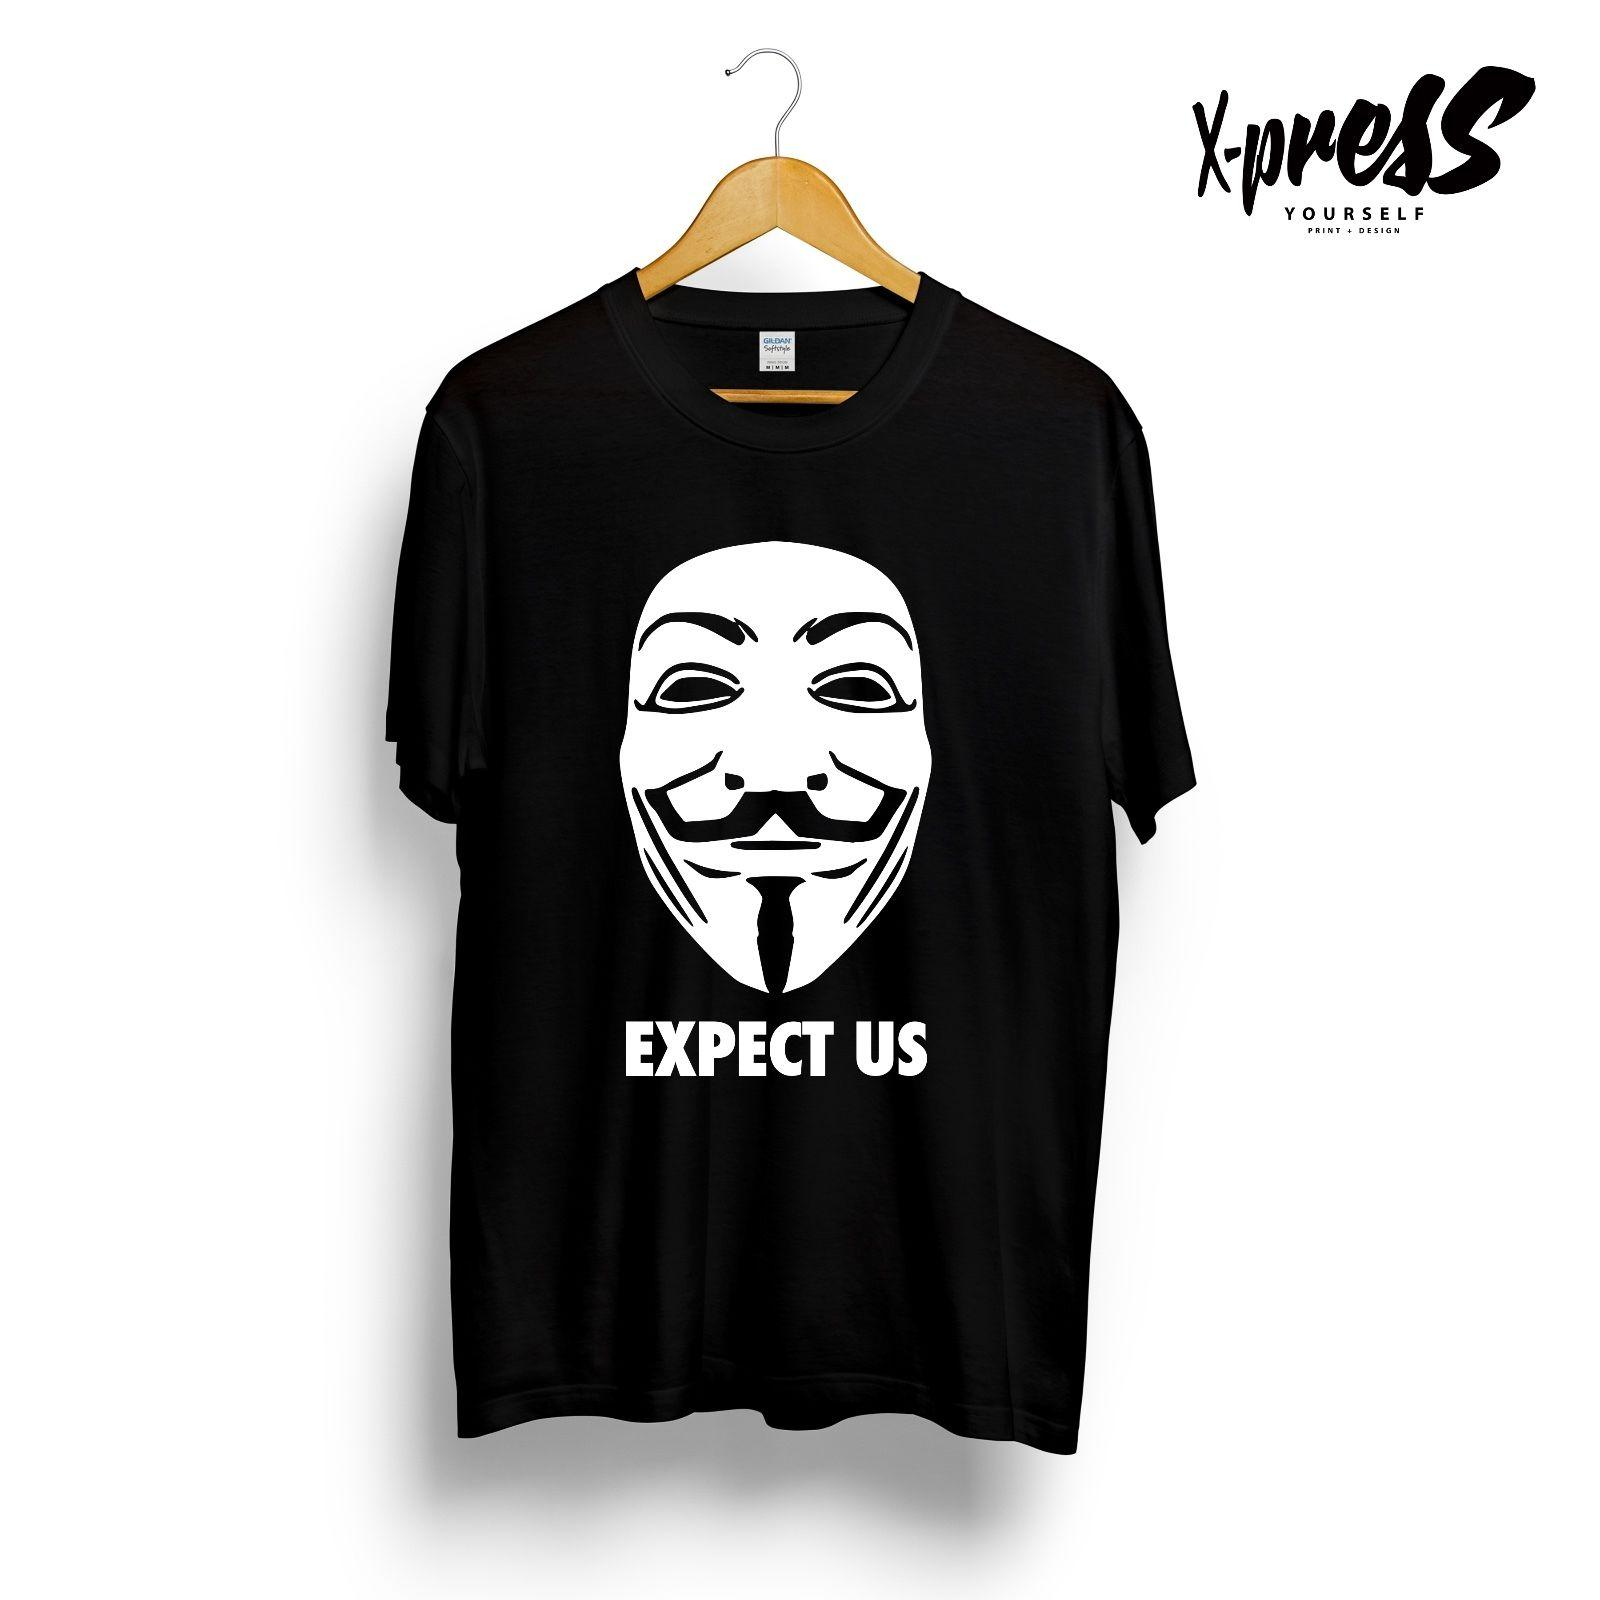 5578a7677ed EXPECT US PRINTED MENS T SHIRT ANONYMOUS INTERNET YOUTUBE REBEL GUY FAWKES  MASK Personality 2018 Brand T Shirt Top Tees Design Your Own T Shirts  Womens ...